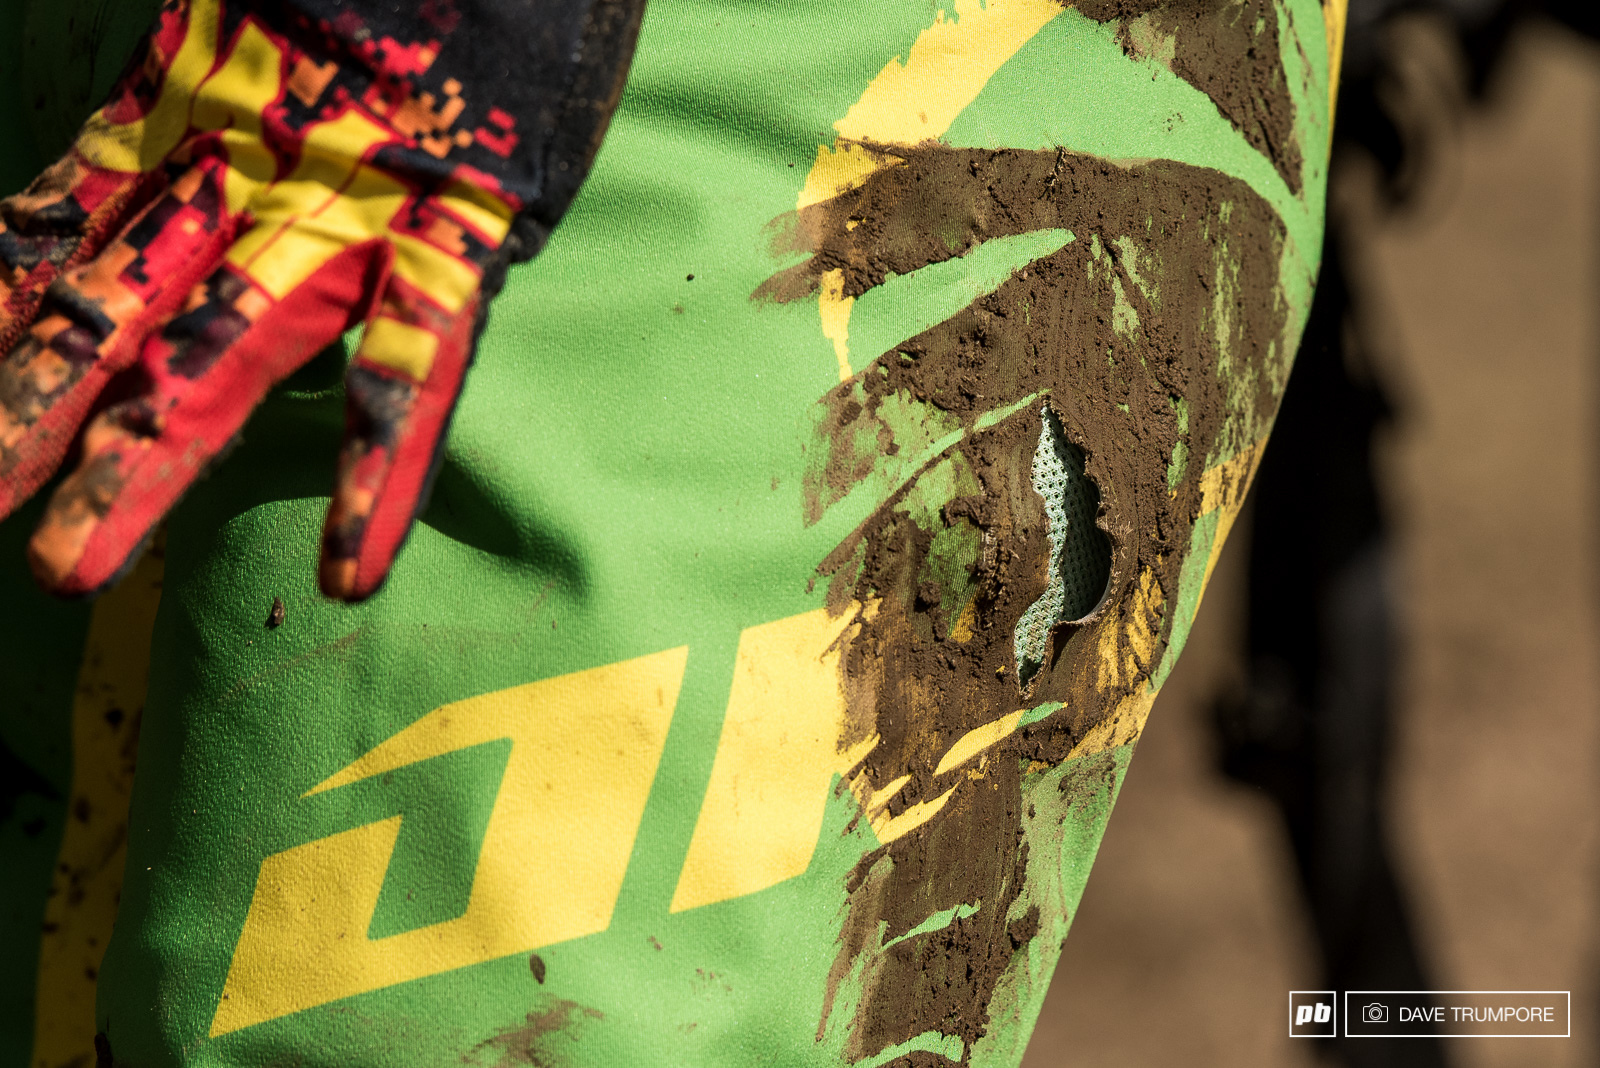 With less than 20 seconds to go it all came unraveled for Loic Bruni today.